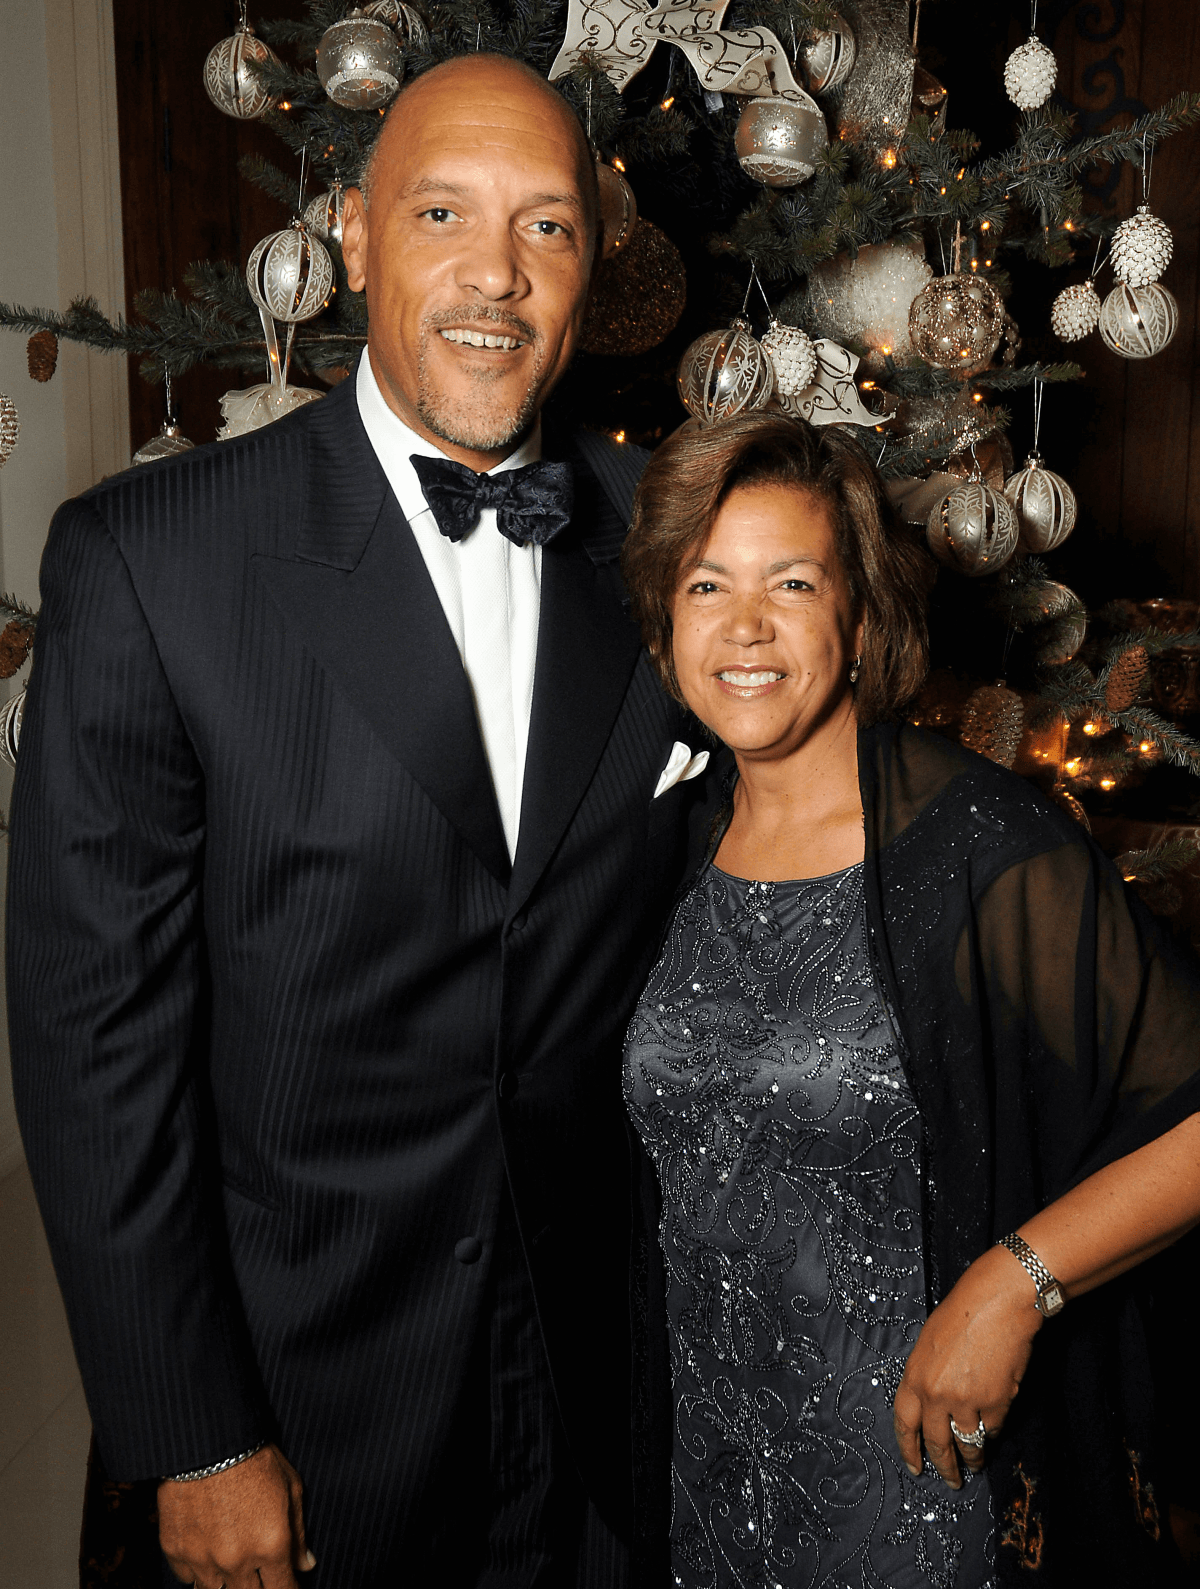 Houston, Trees of Hope gala, Nov. 2016, Phyllis Caldwell, Barry Caldwell